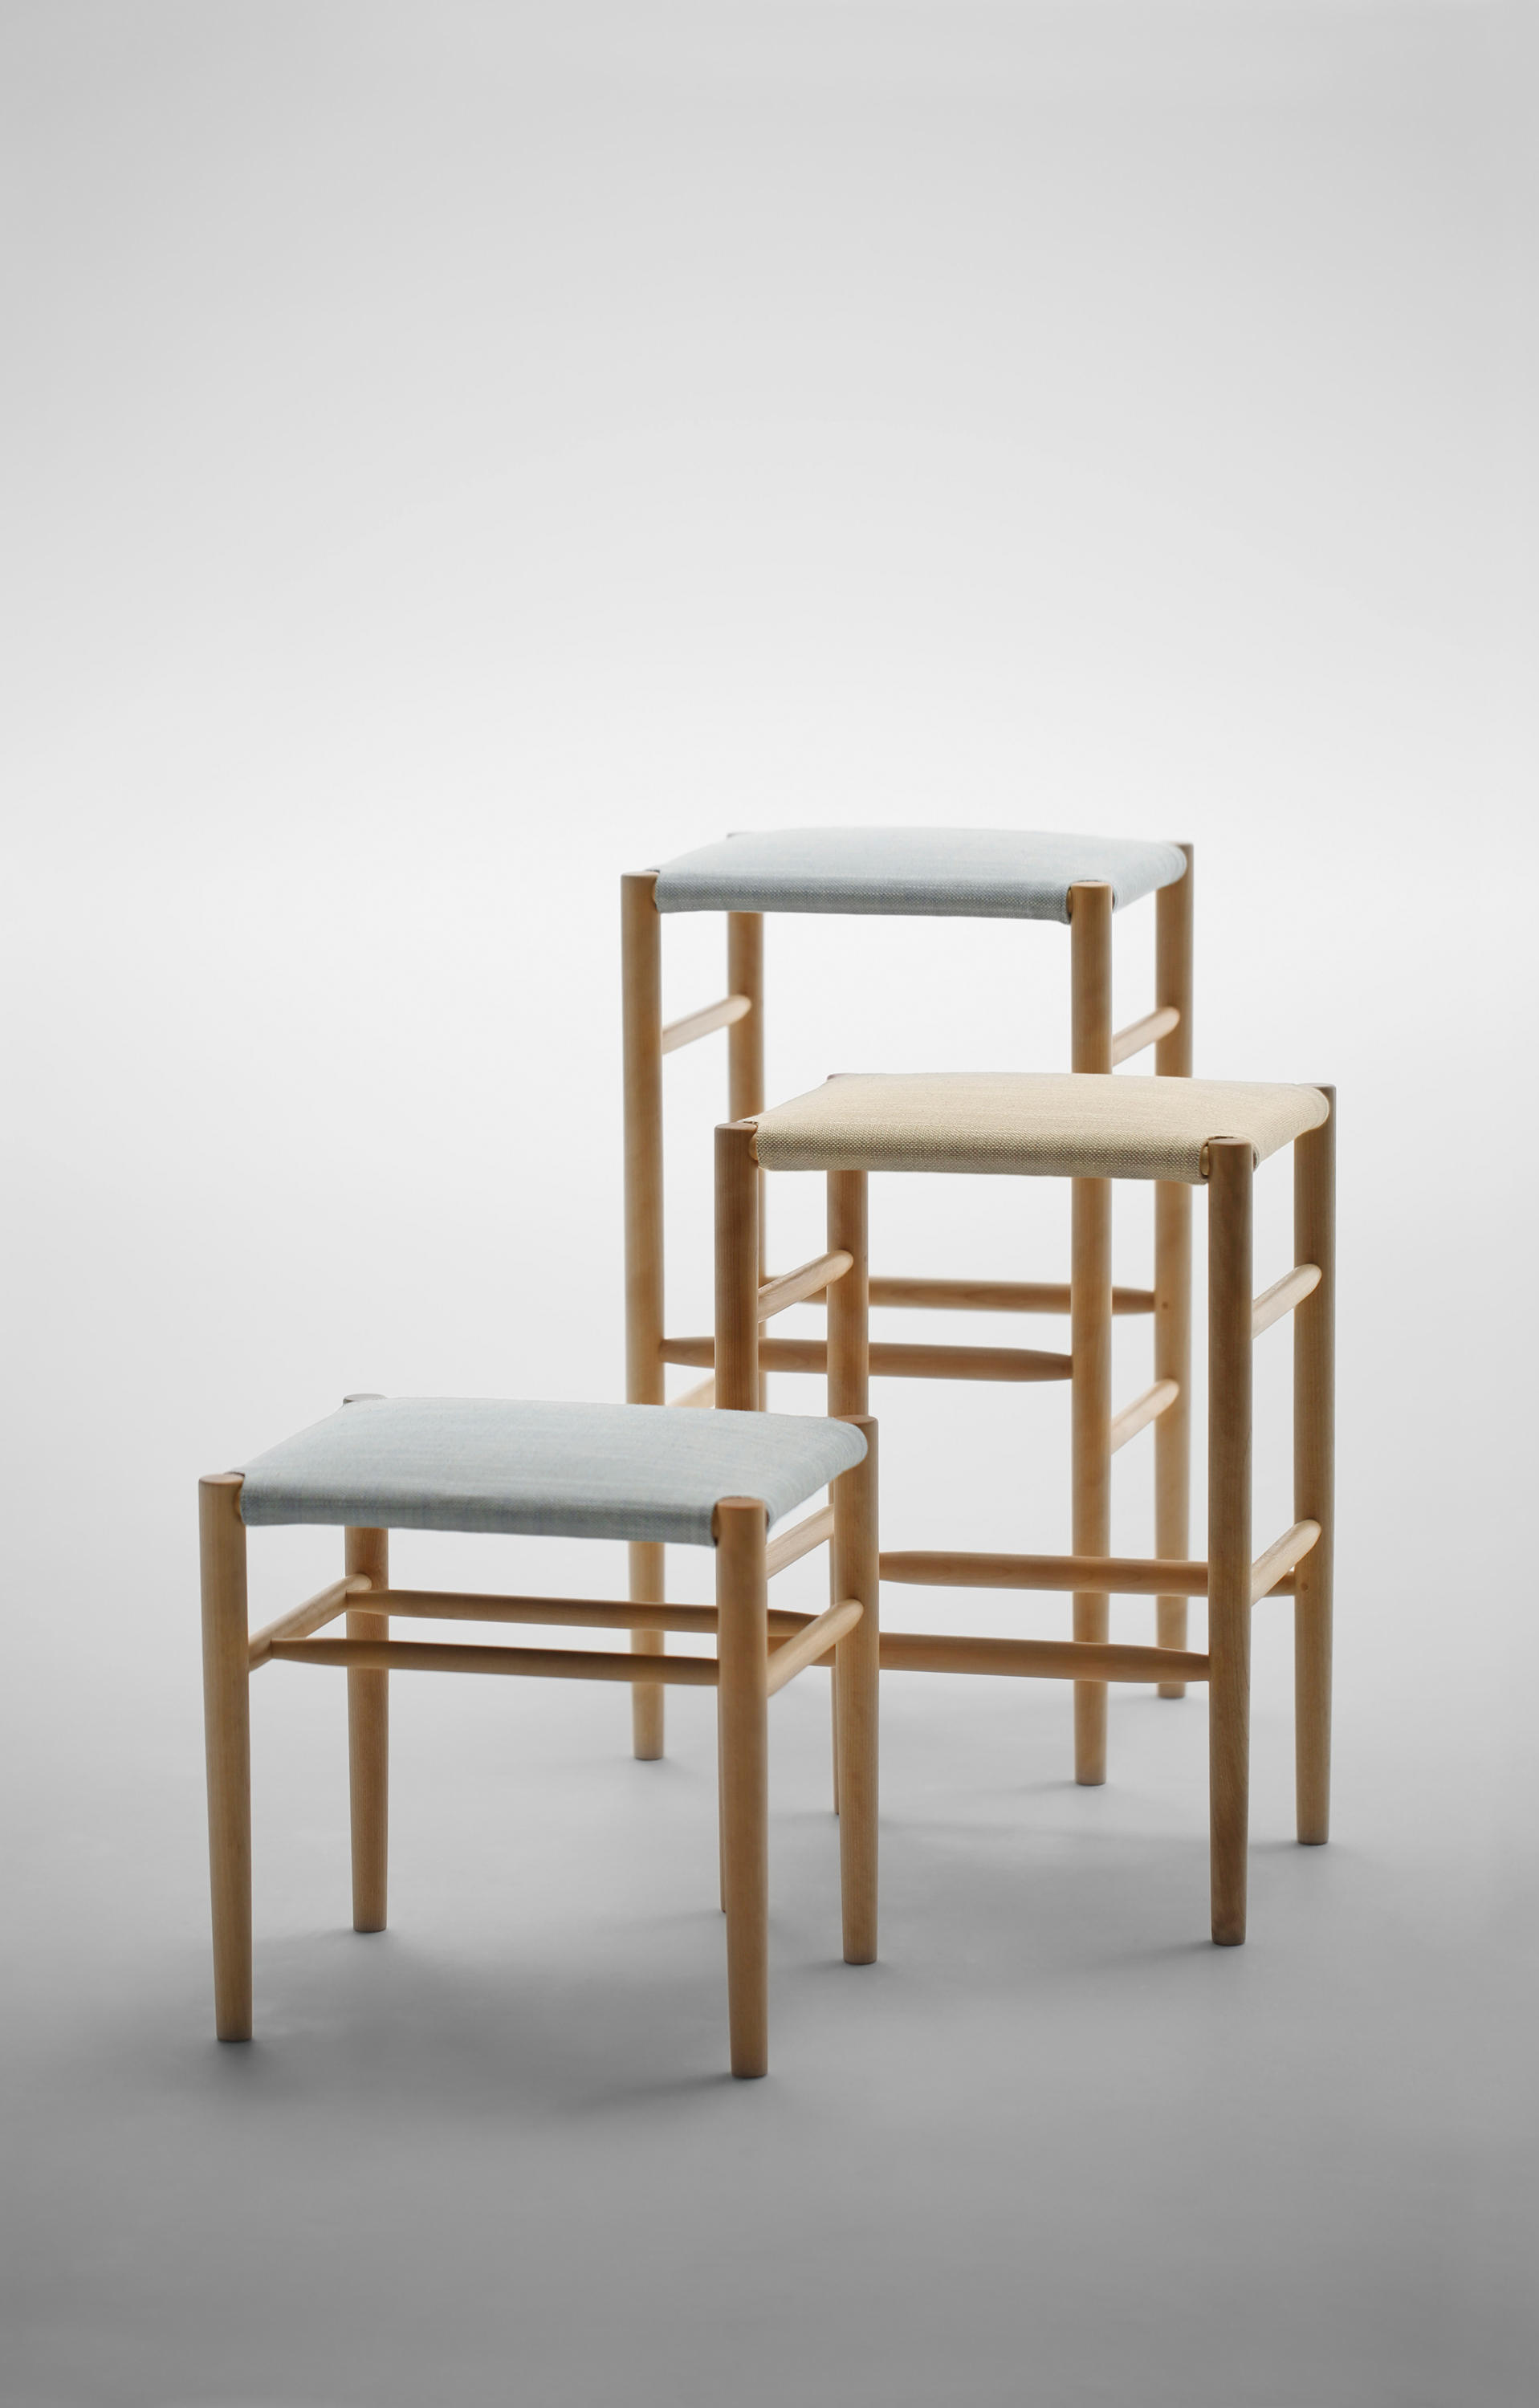 ... Lightwood Arm Chair (Mesh Seat) By MARUNI ...